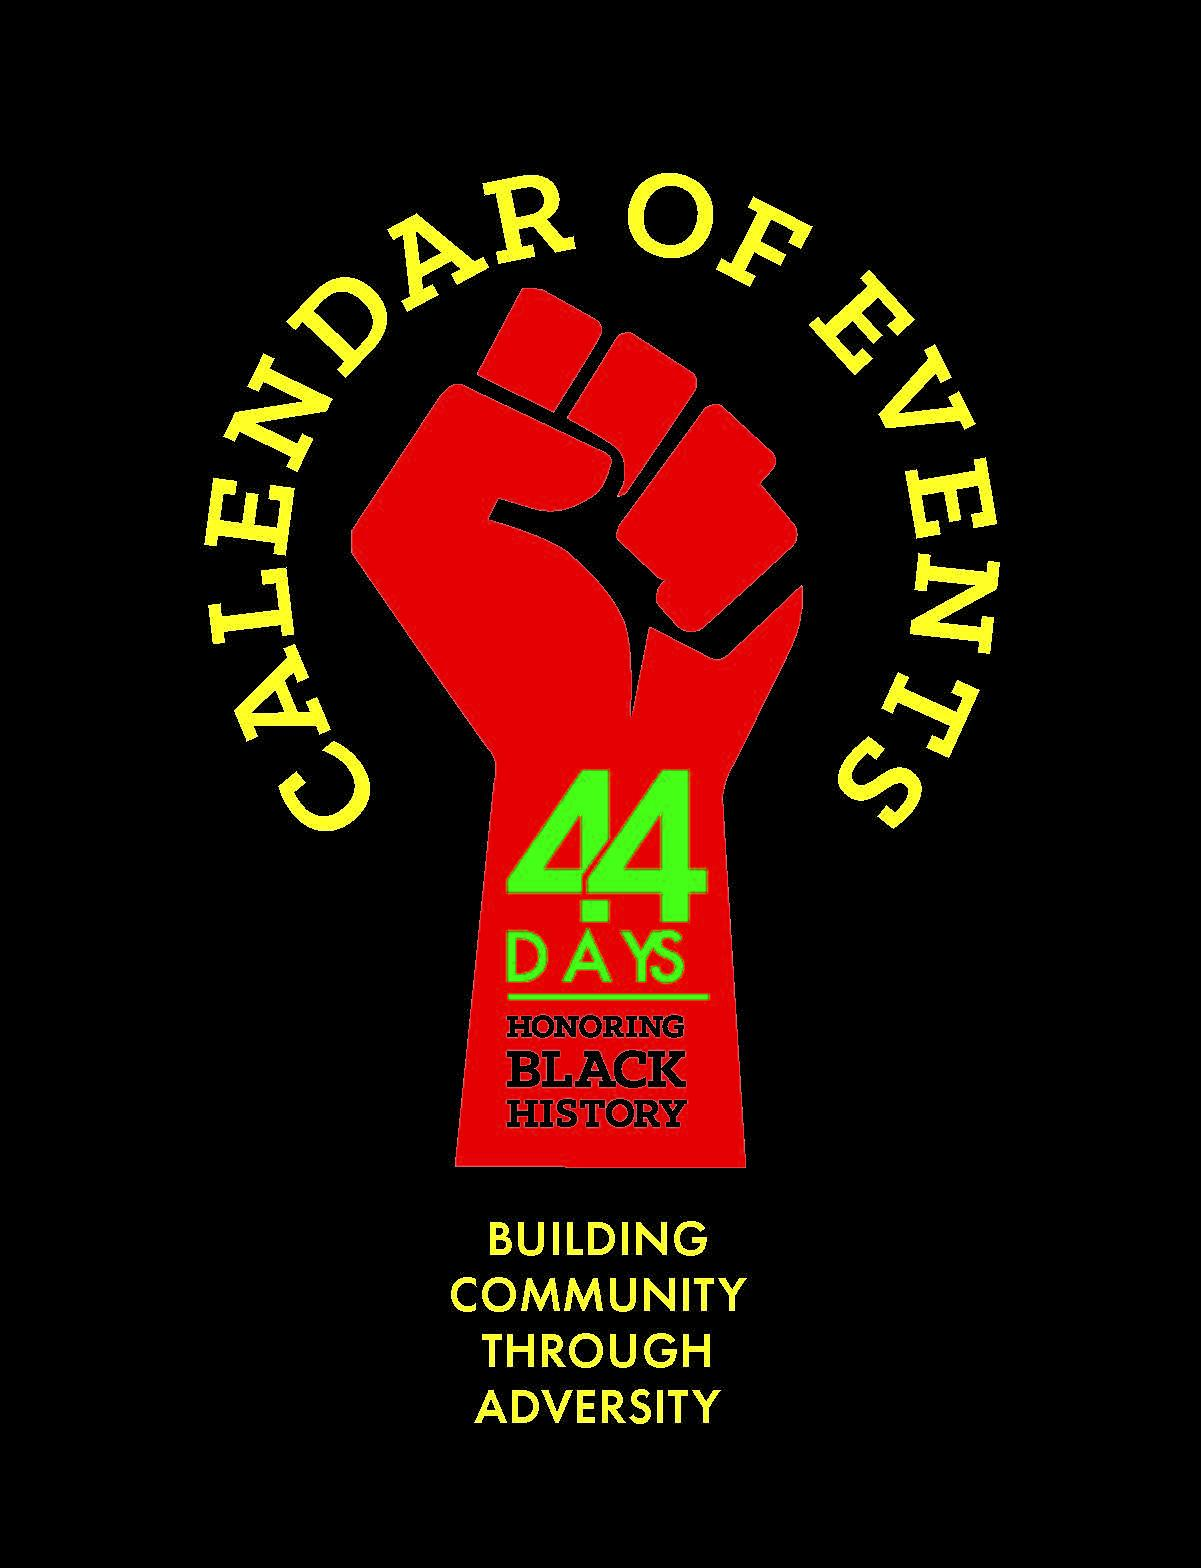 44 days logo red black and green. Building Community Through Diversity